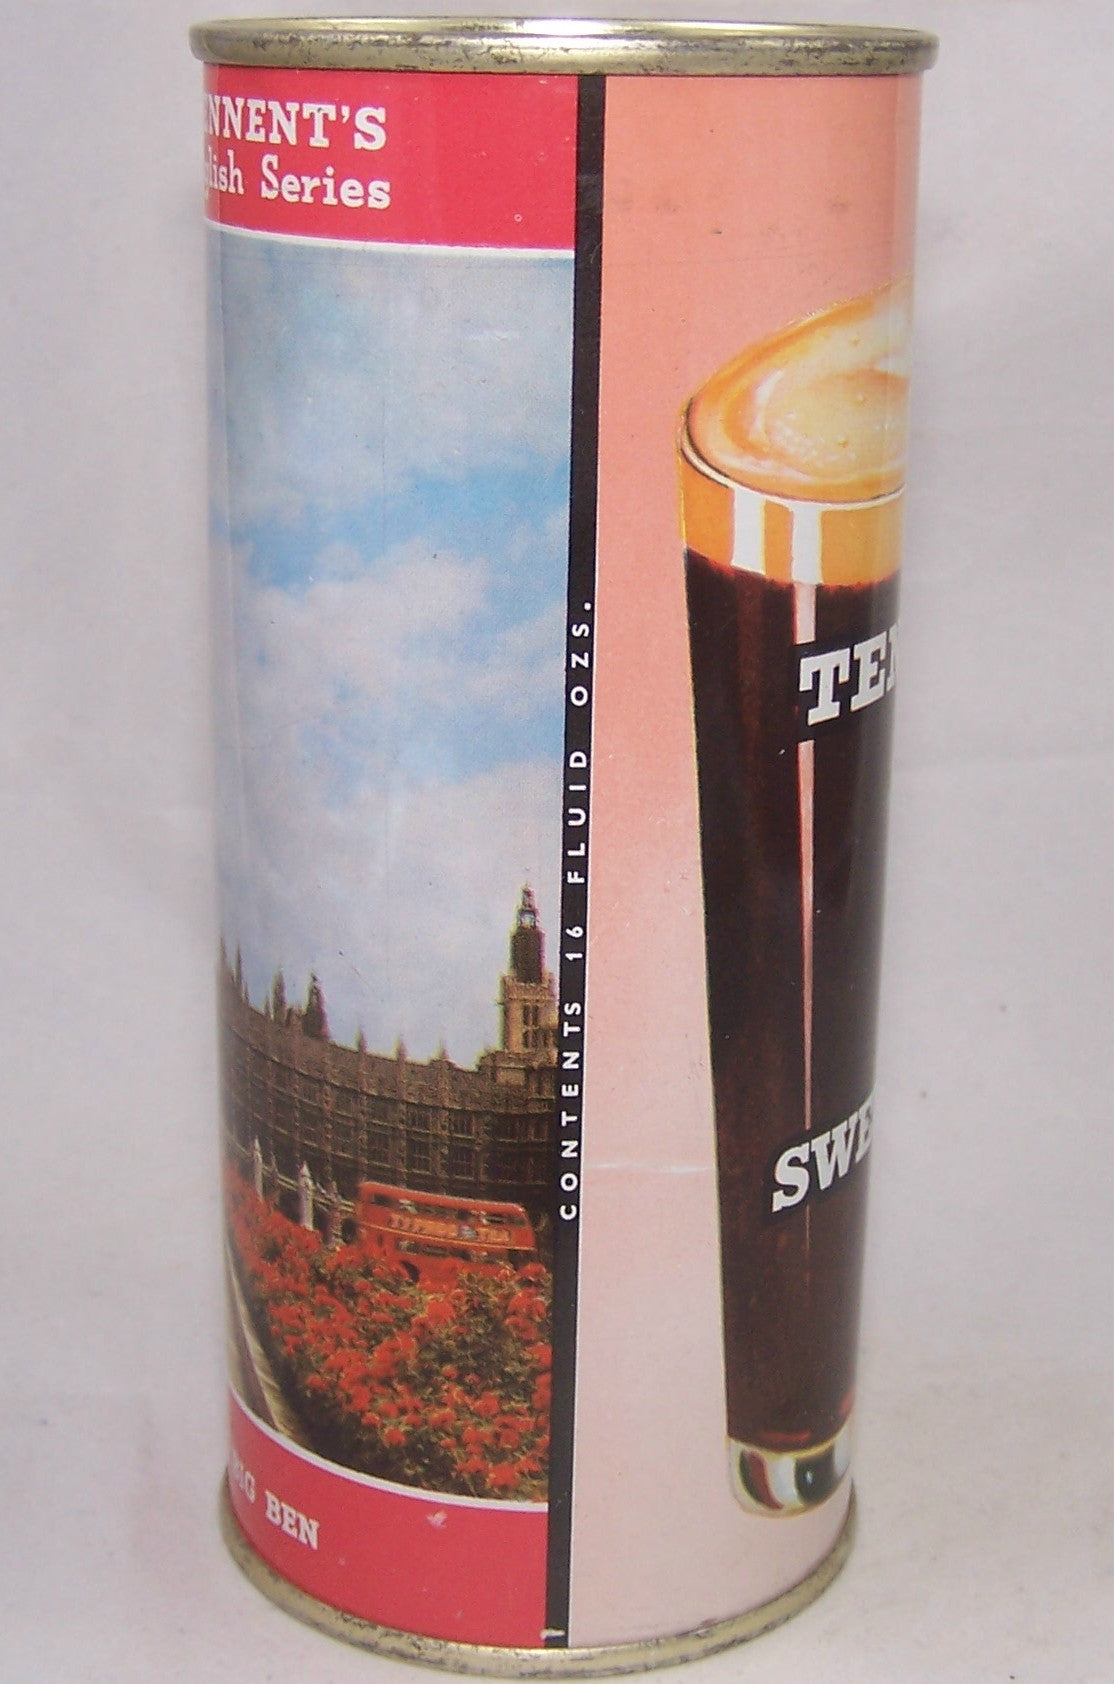 Tennent's Sweet Stout, English Series ( Big Ben), Grade A1+ Sold on 12/19/16